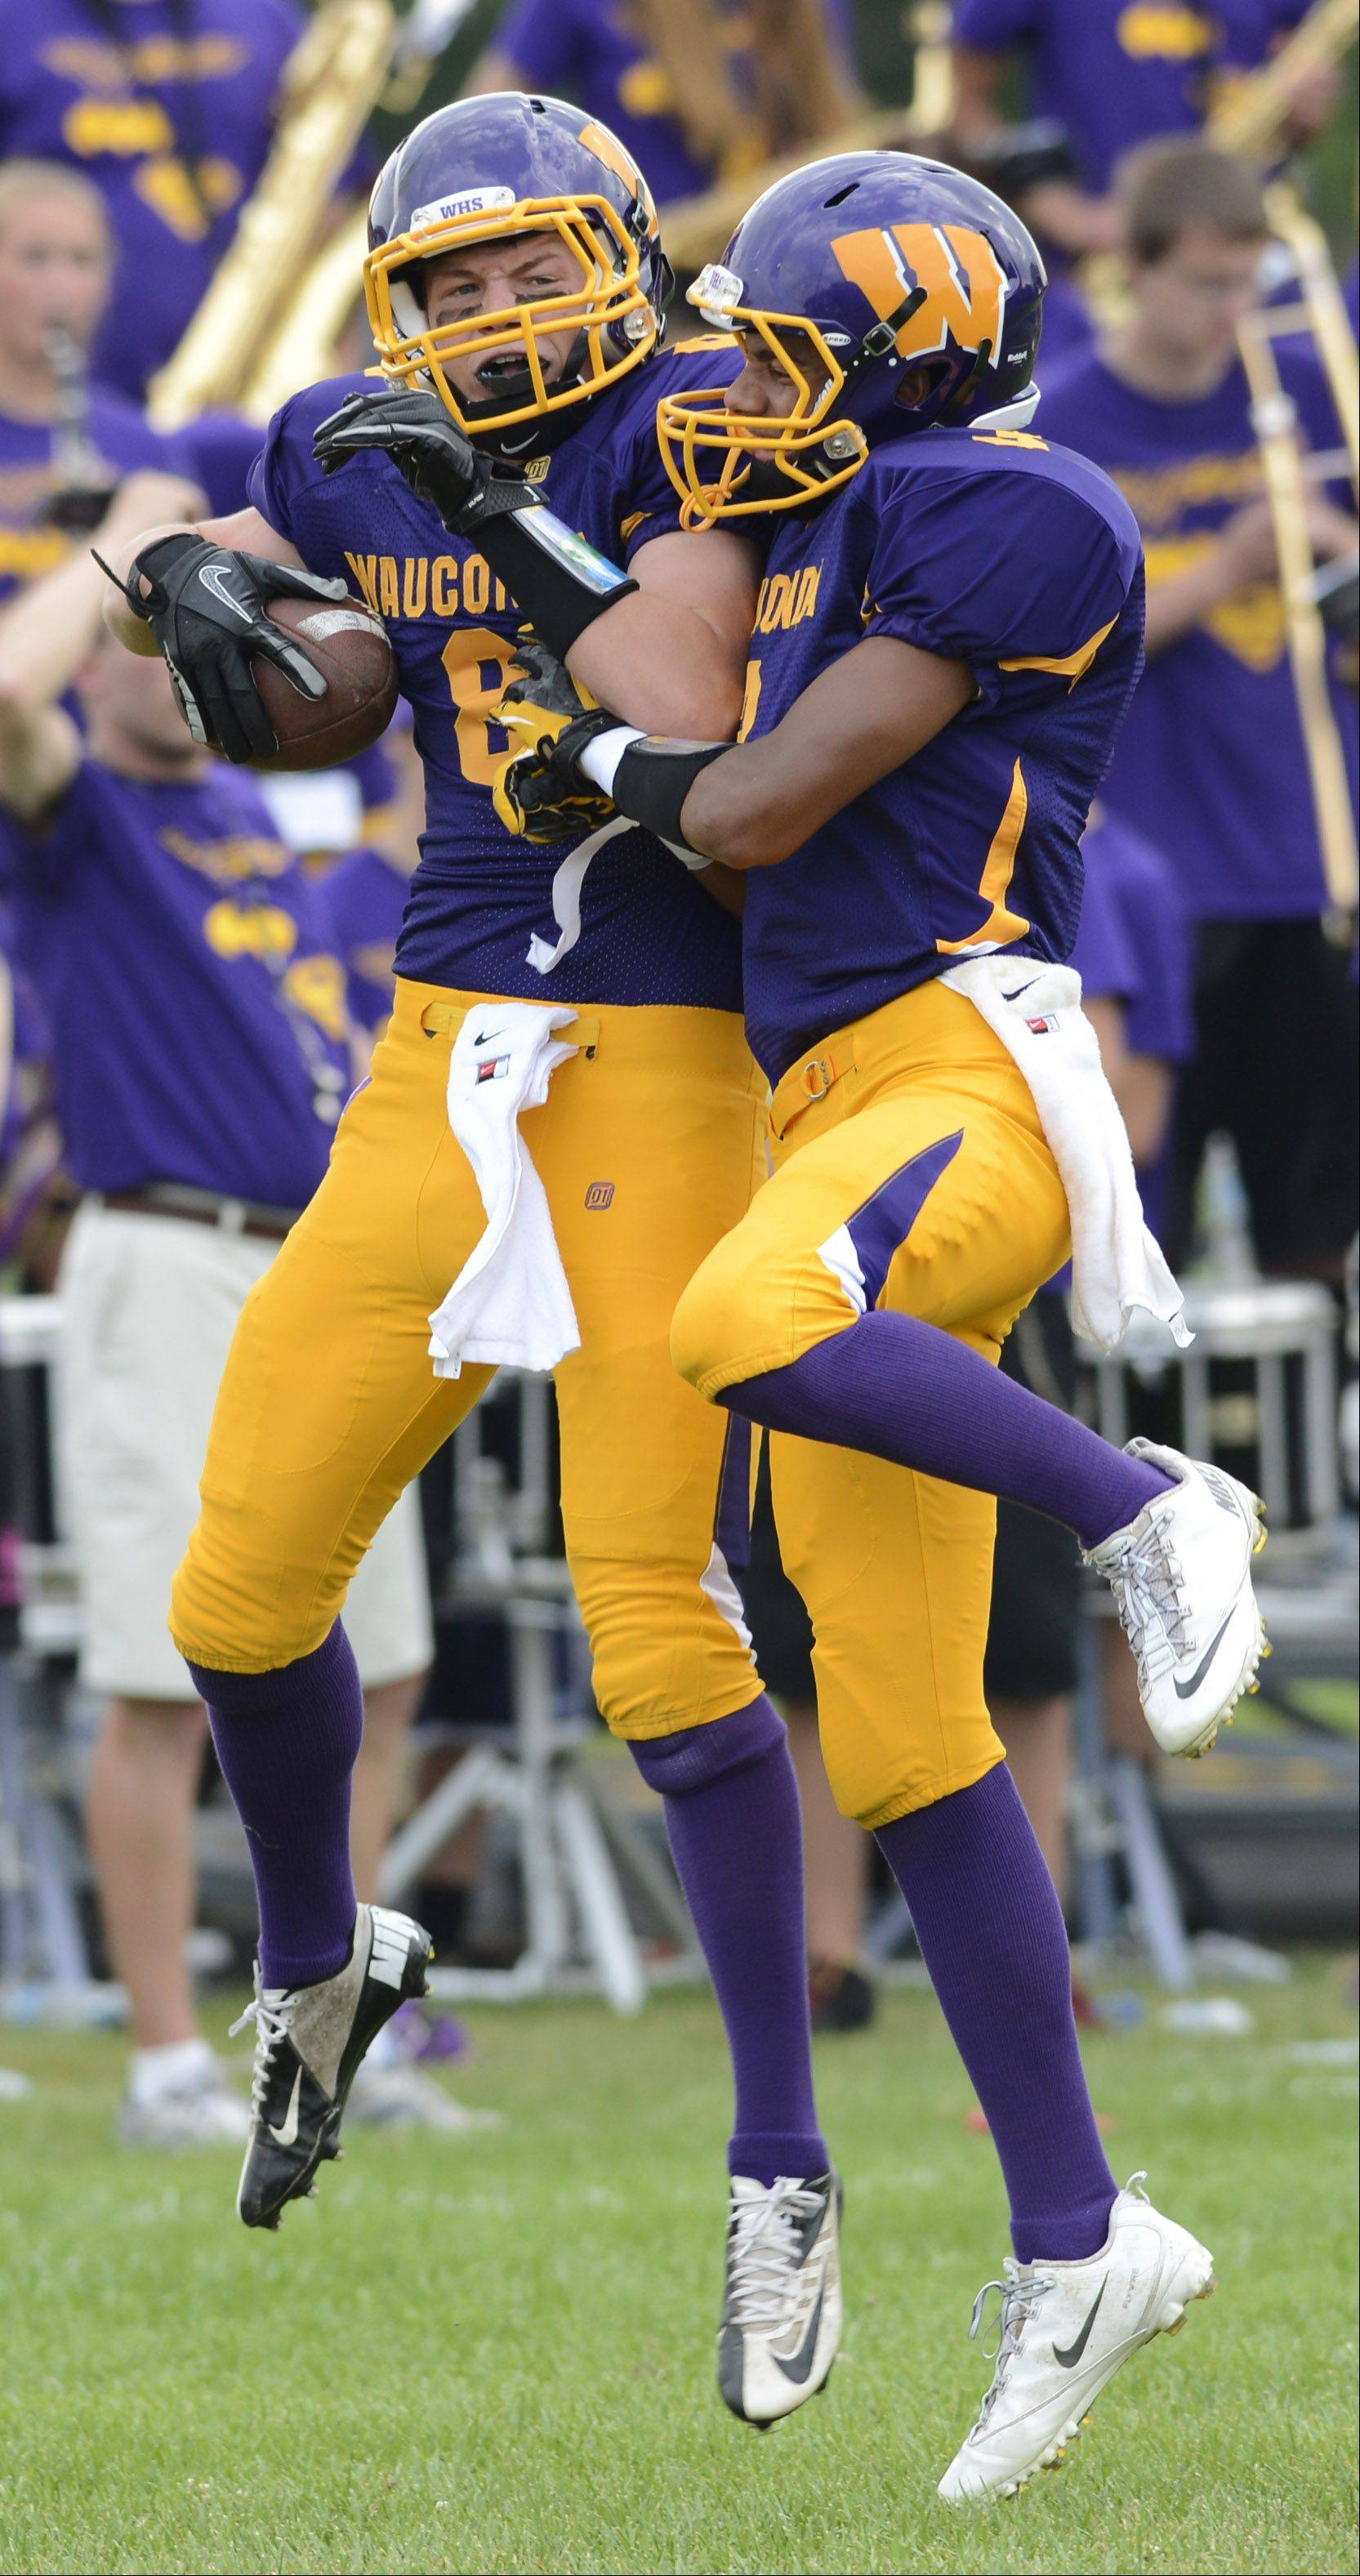 Wauconda's Alex Schwickrath, left, celebrates a first-quarter touchdown with teammate Josh Anderson during Saturday's game.